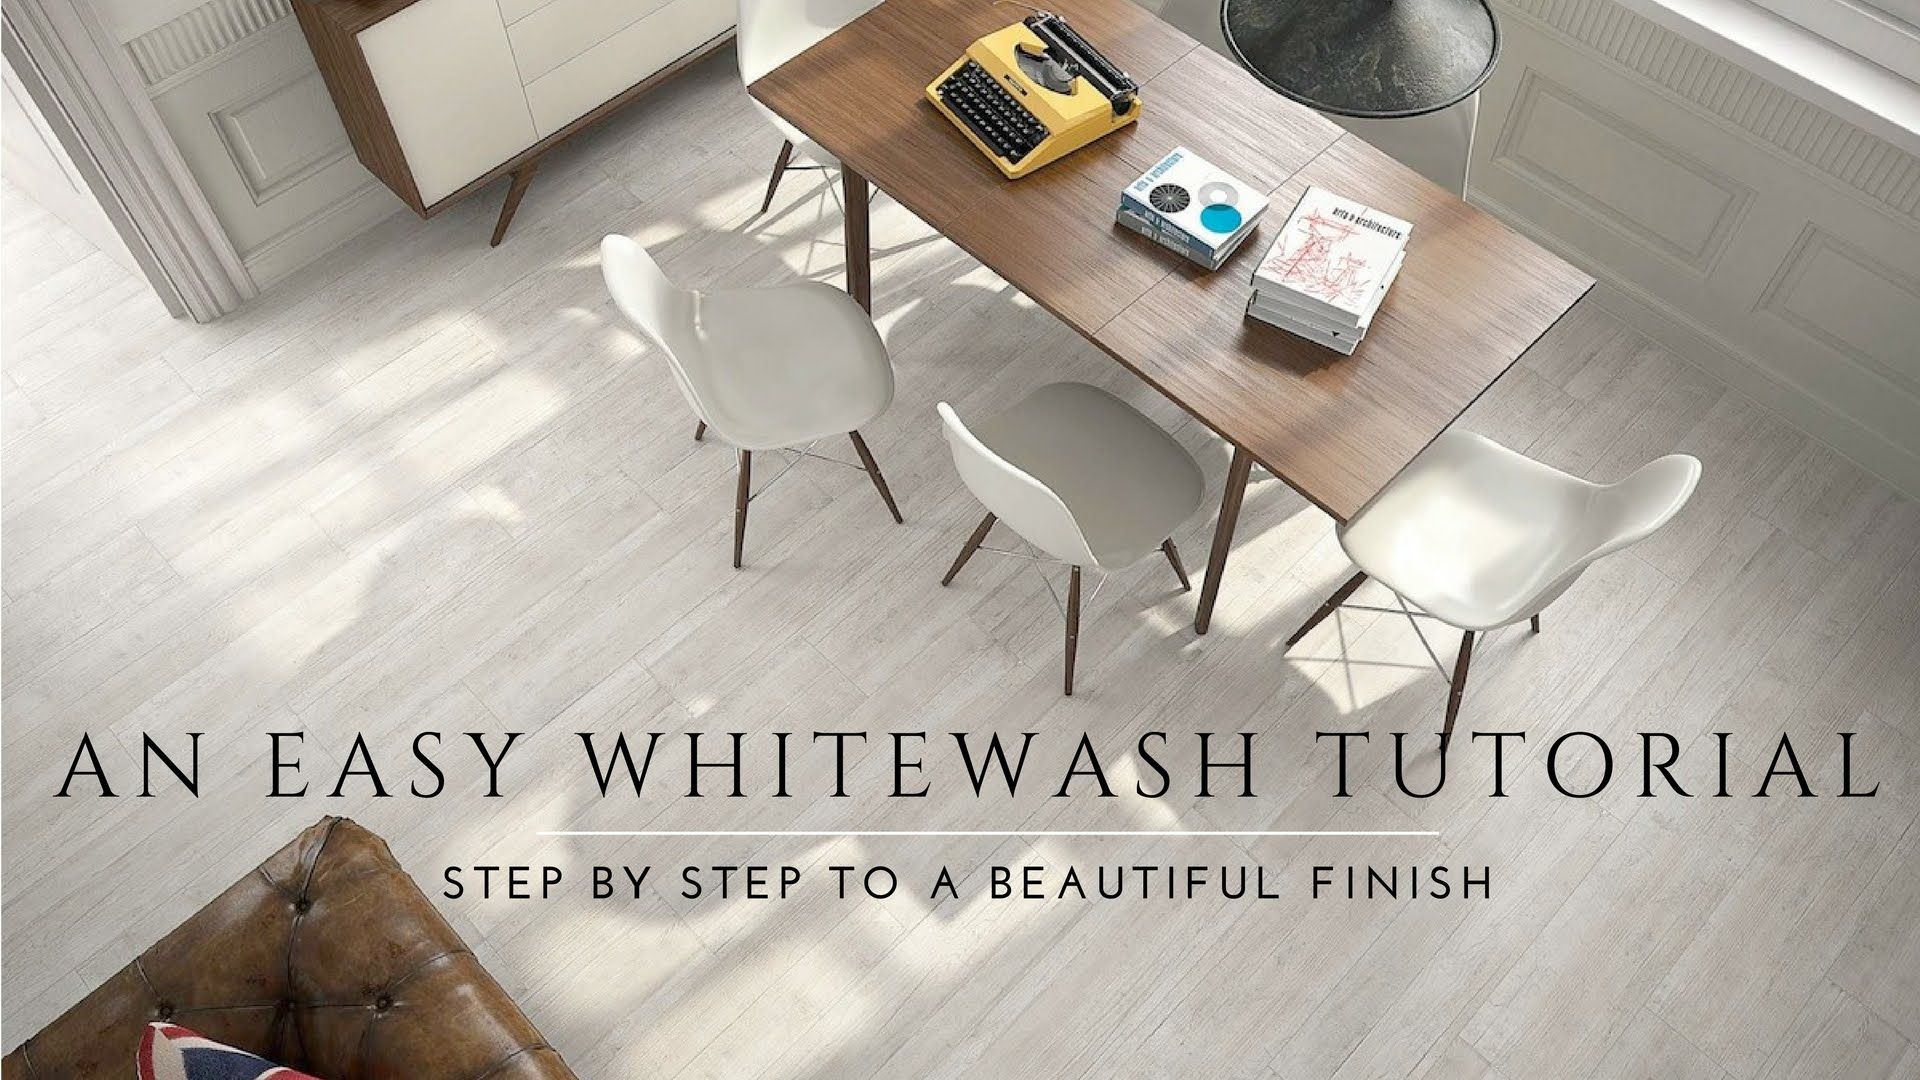 How To Whitewash And Seal A Wood Floor Diy Steps Milk Paint Lime Wash White Washed Floors Wood Parquet Flooring Flooring